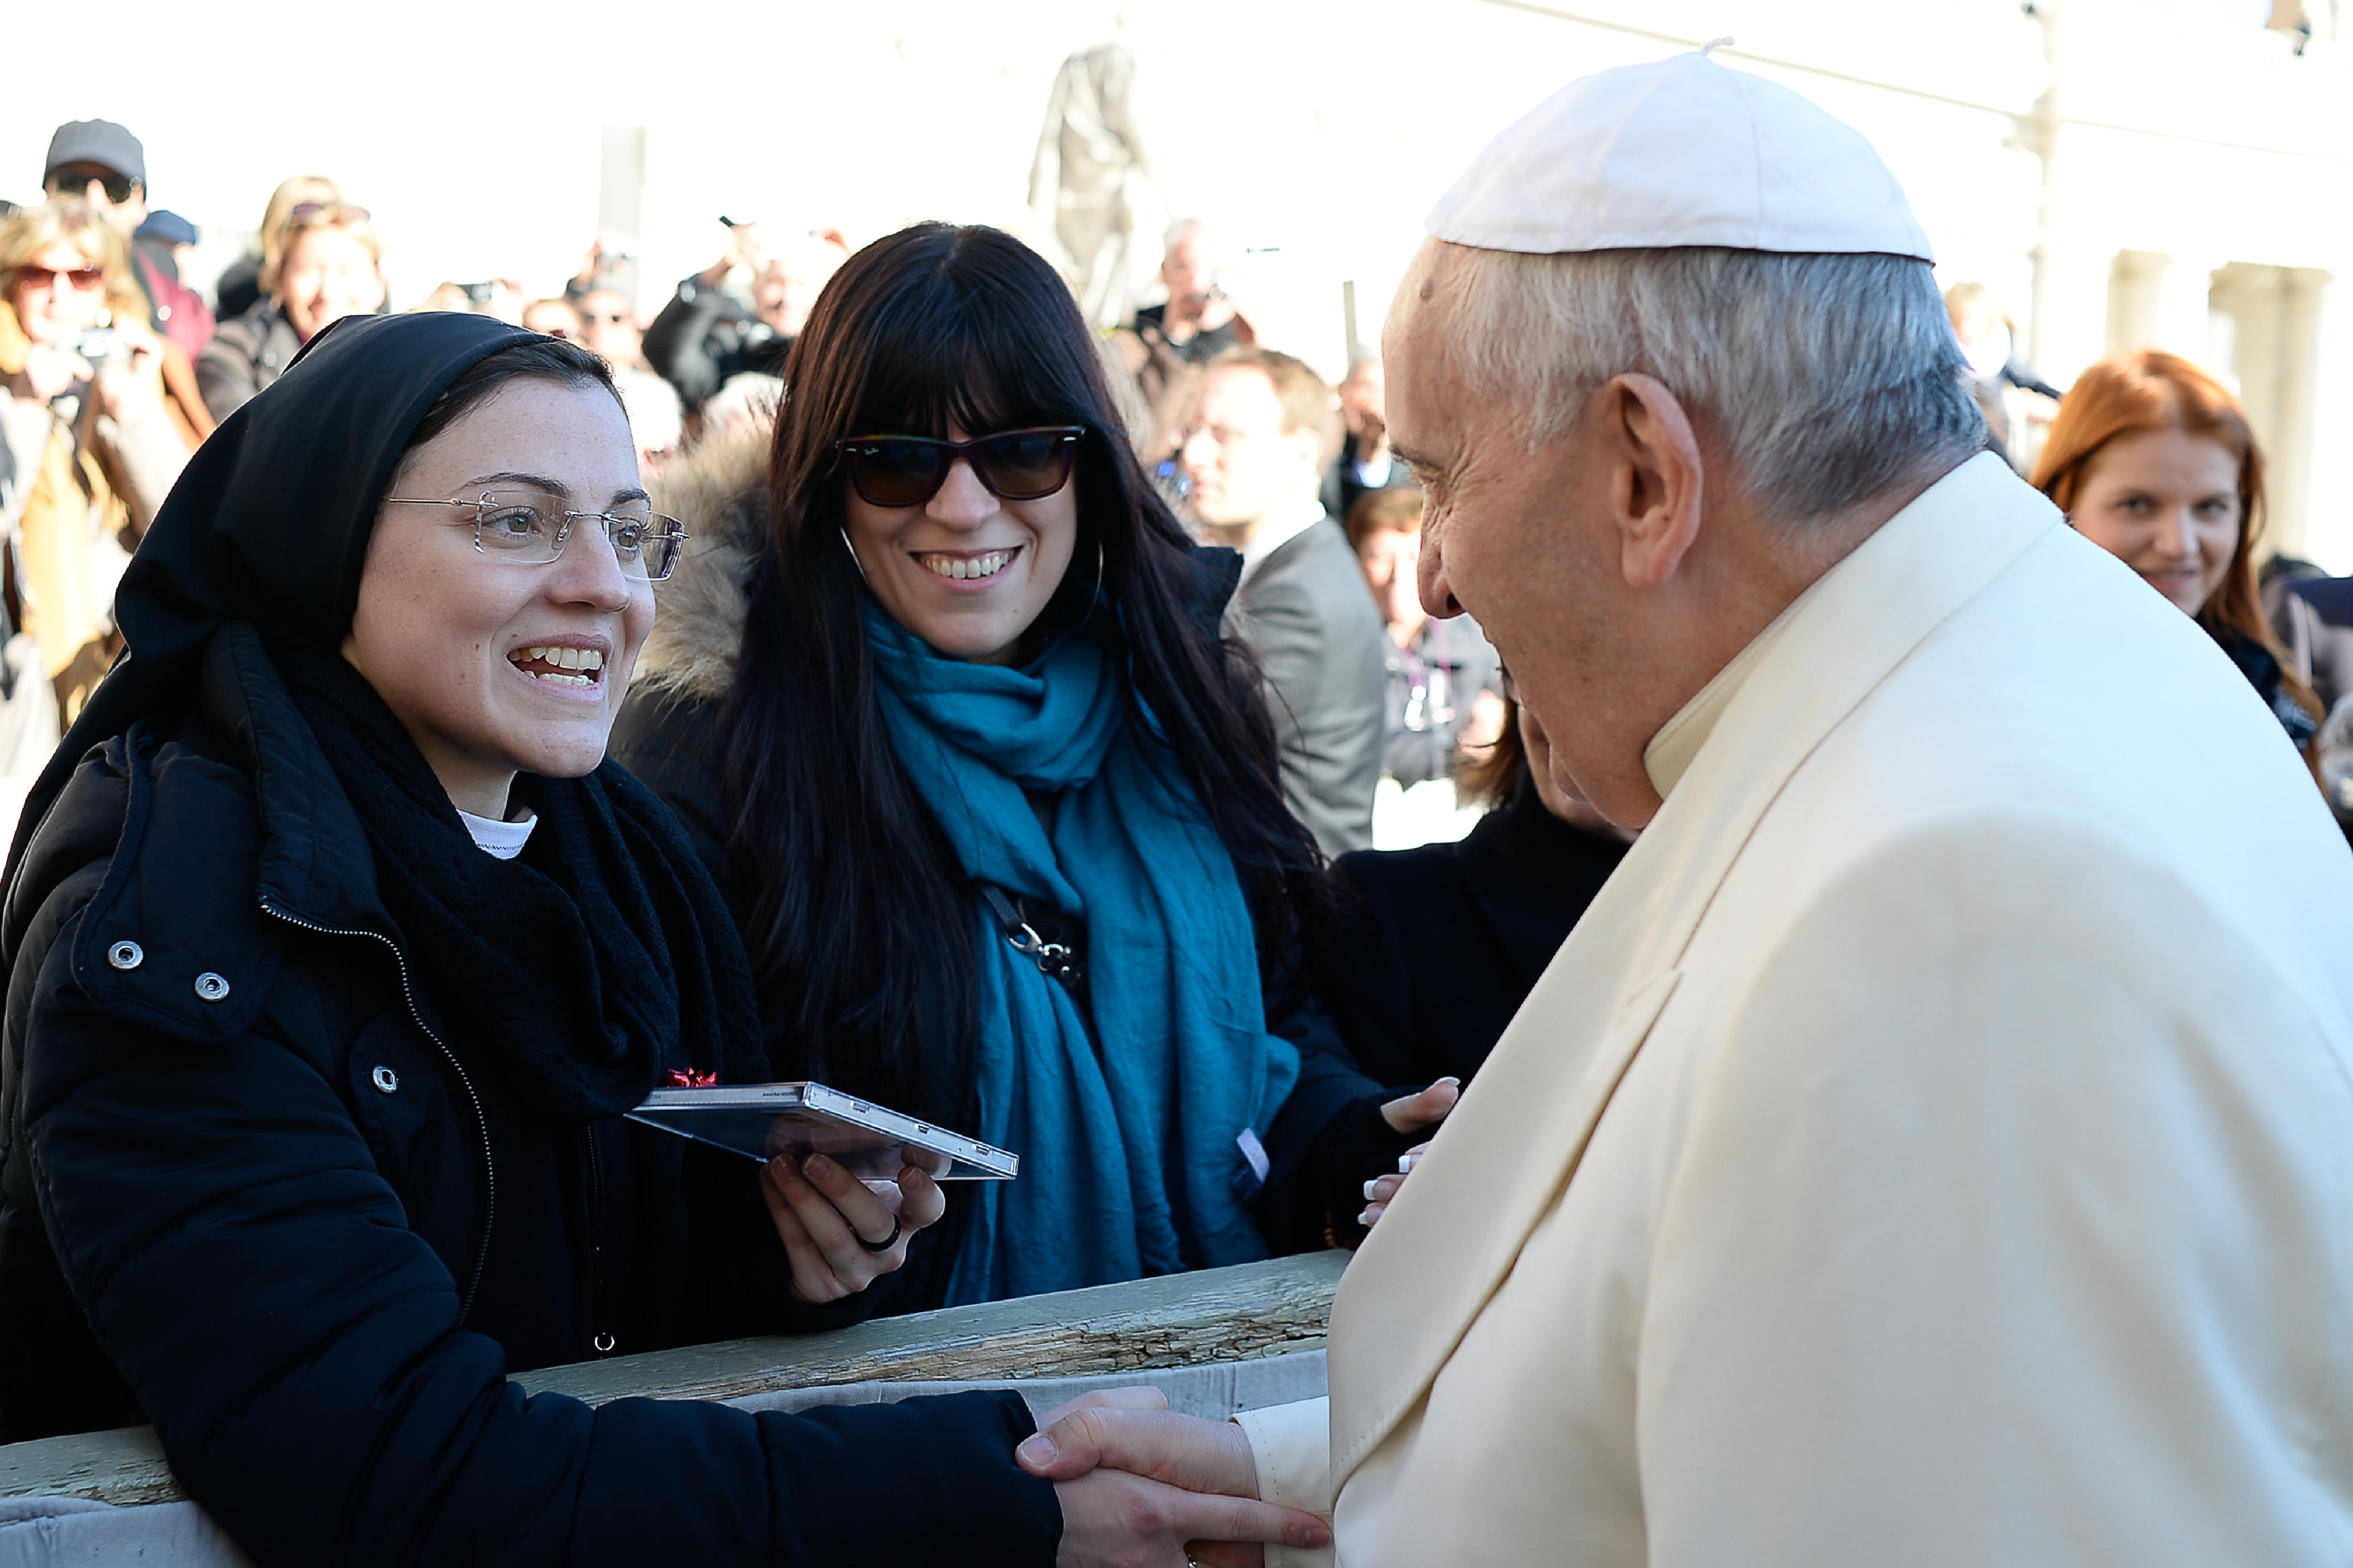 In this photo provided by the Vatican newspaper L' Osservatore Romano, Pope Francis greets Sister Cristina Scuccia as she presents him with her CD at the end of his weekly general audience in St. Peter's Square at the Vatican on Dec. 10, 2014